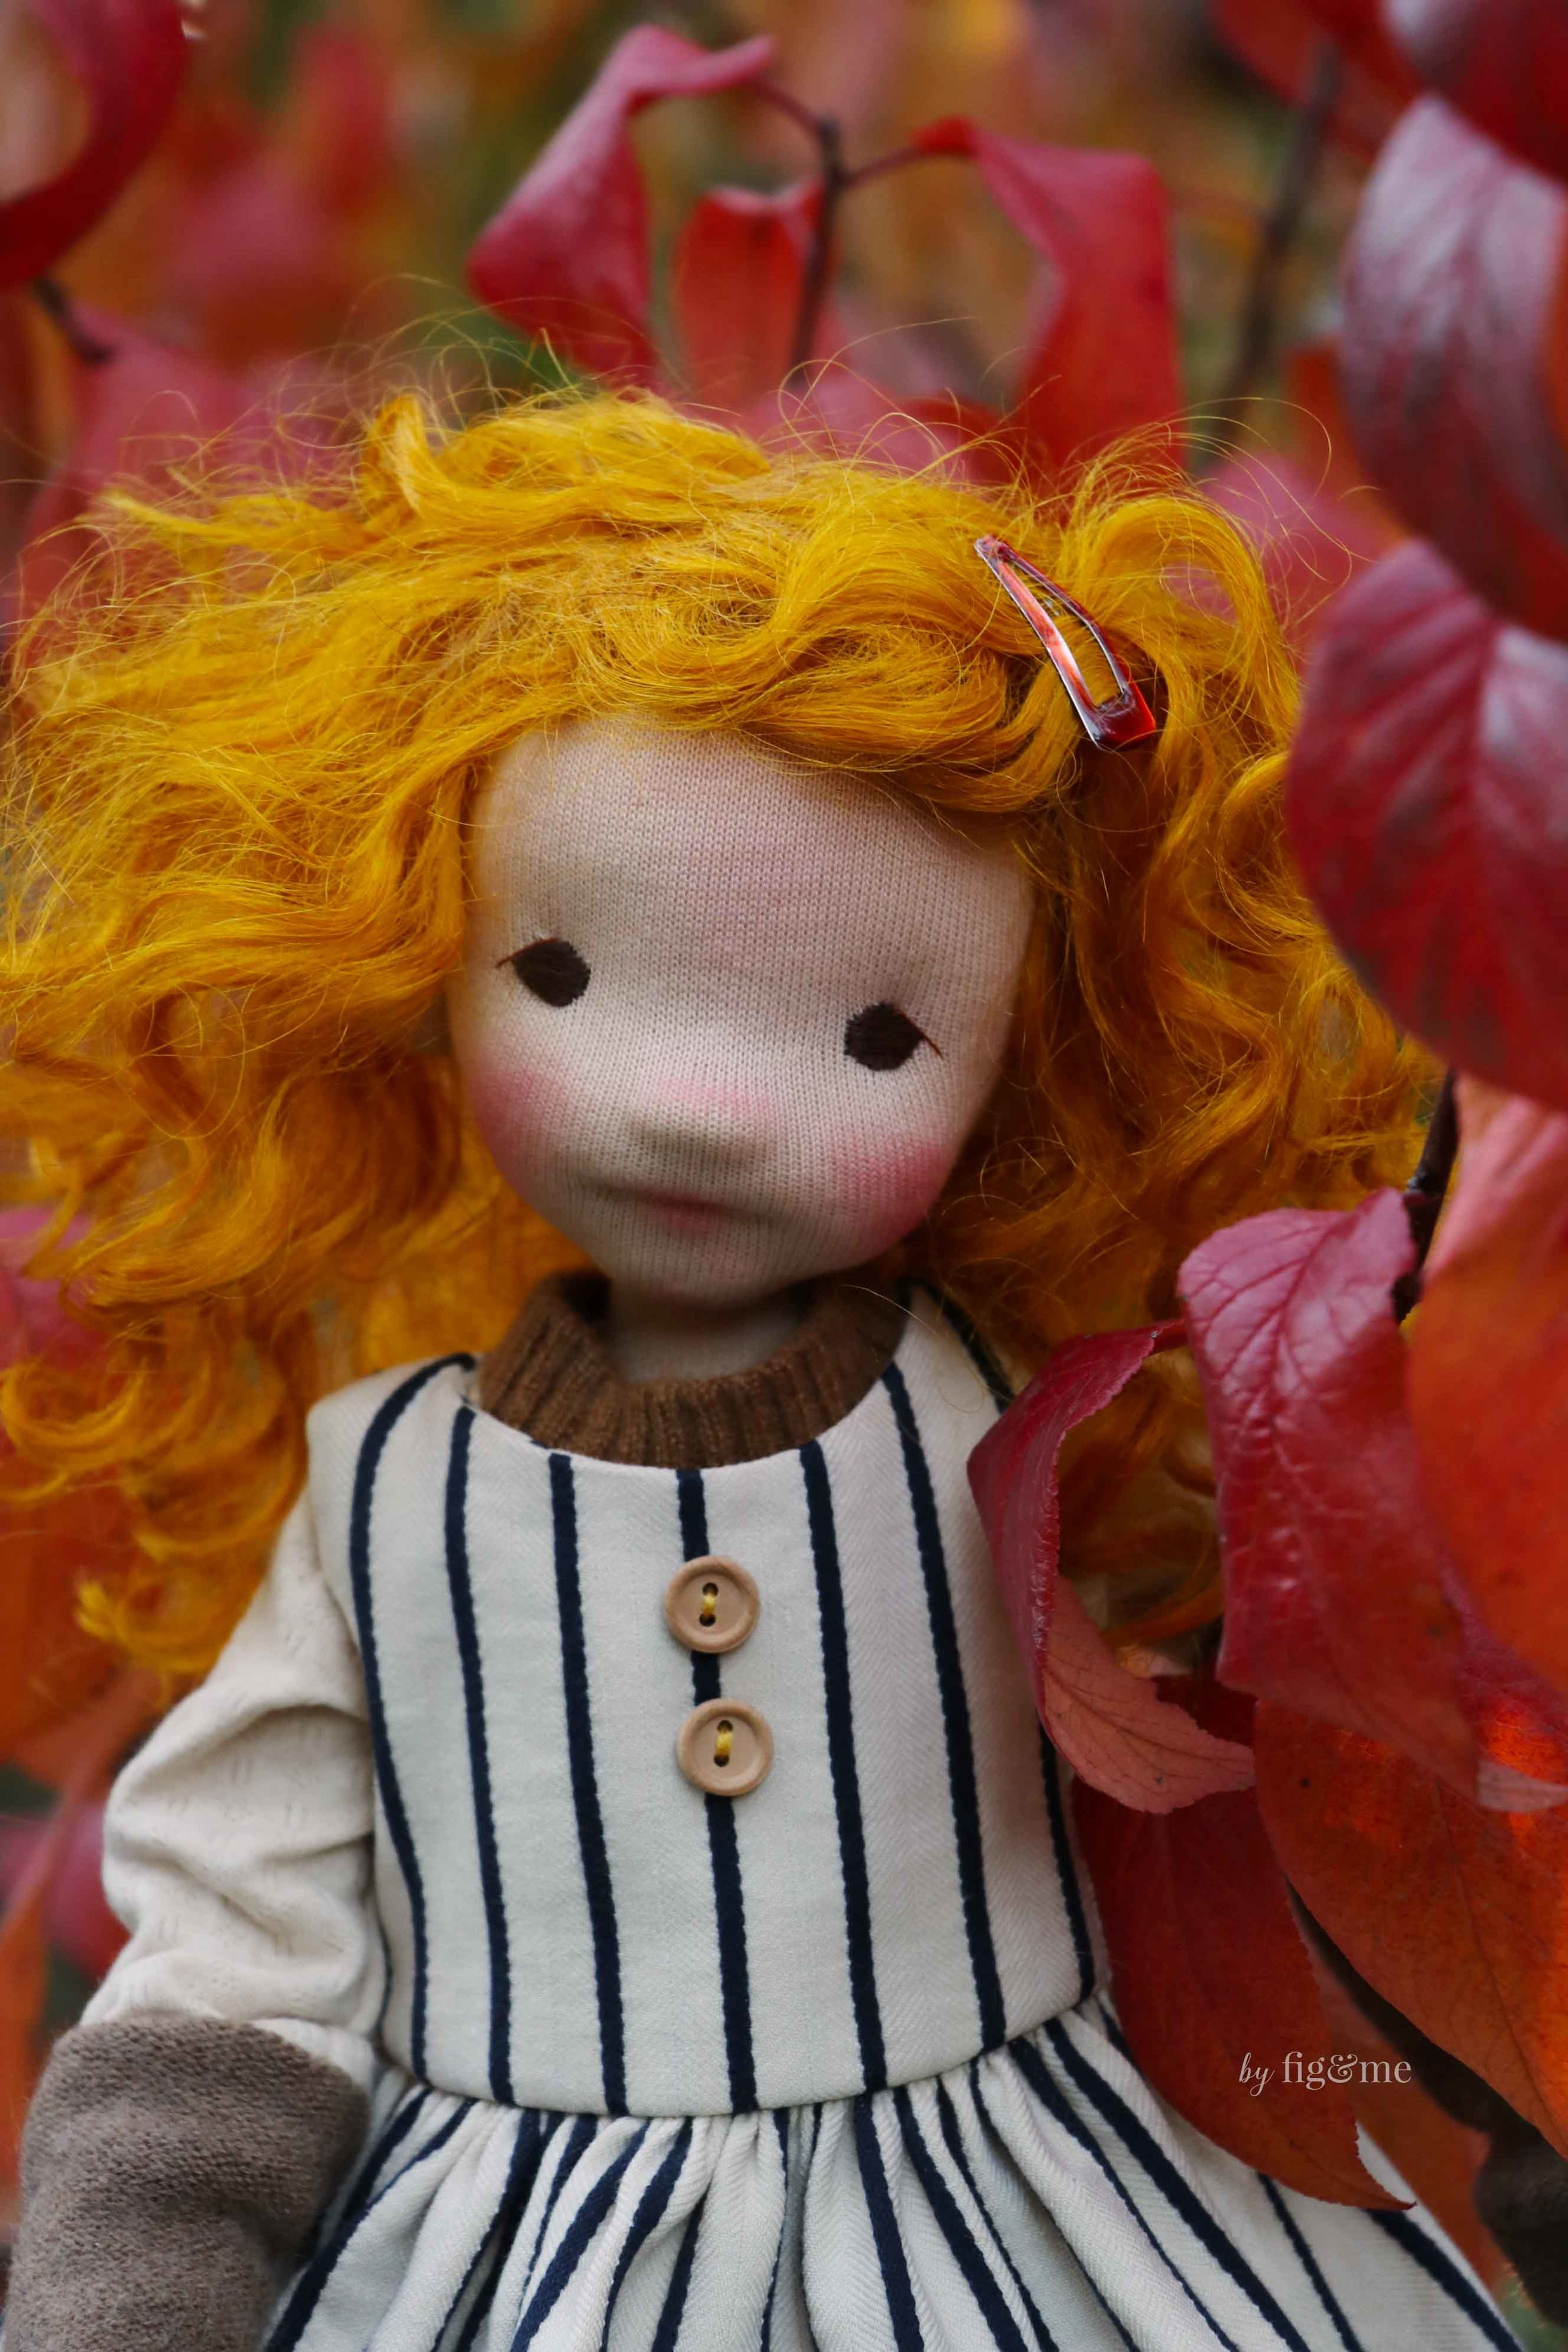 Rye, a jointed all-natural fiber art doll by Fig and Me.